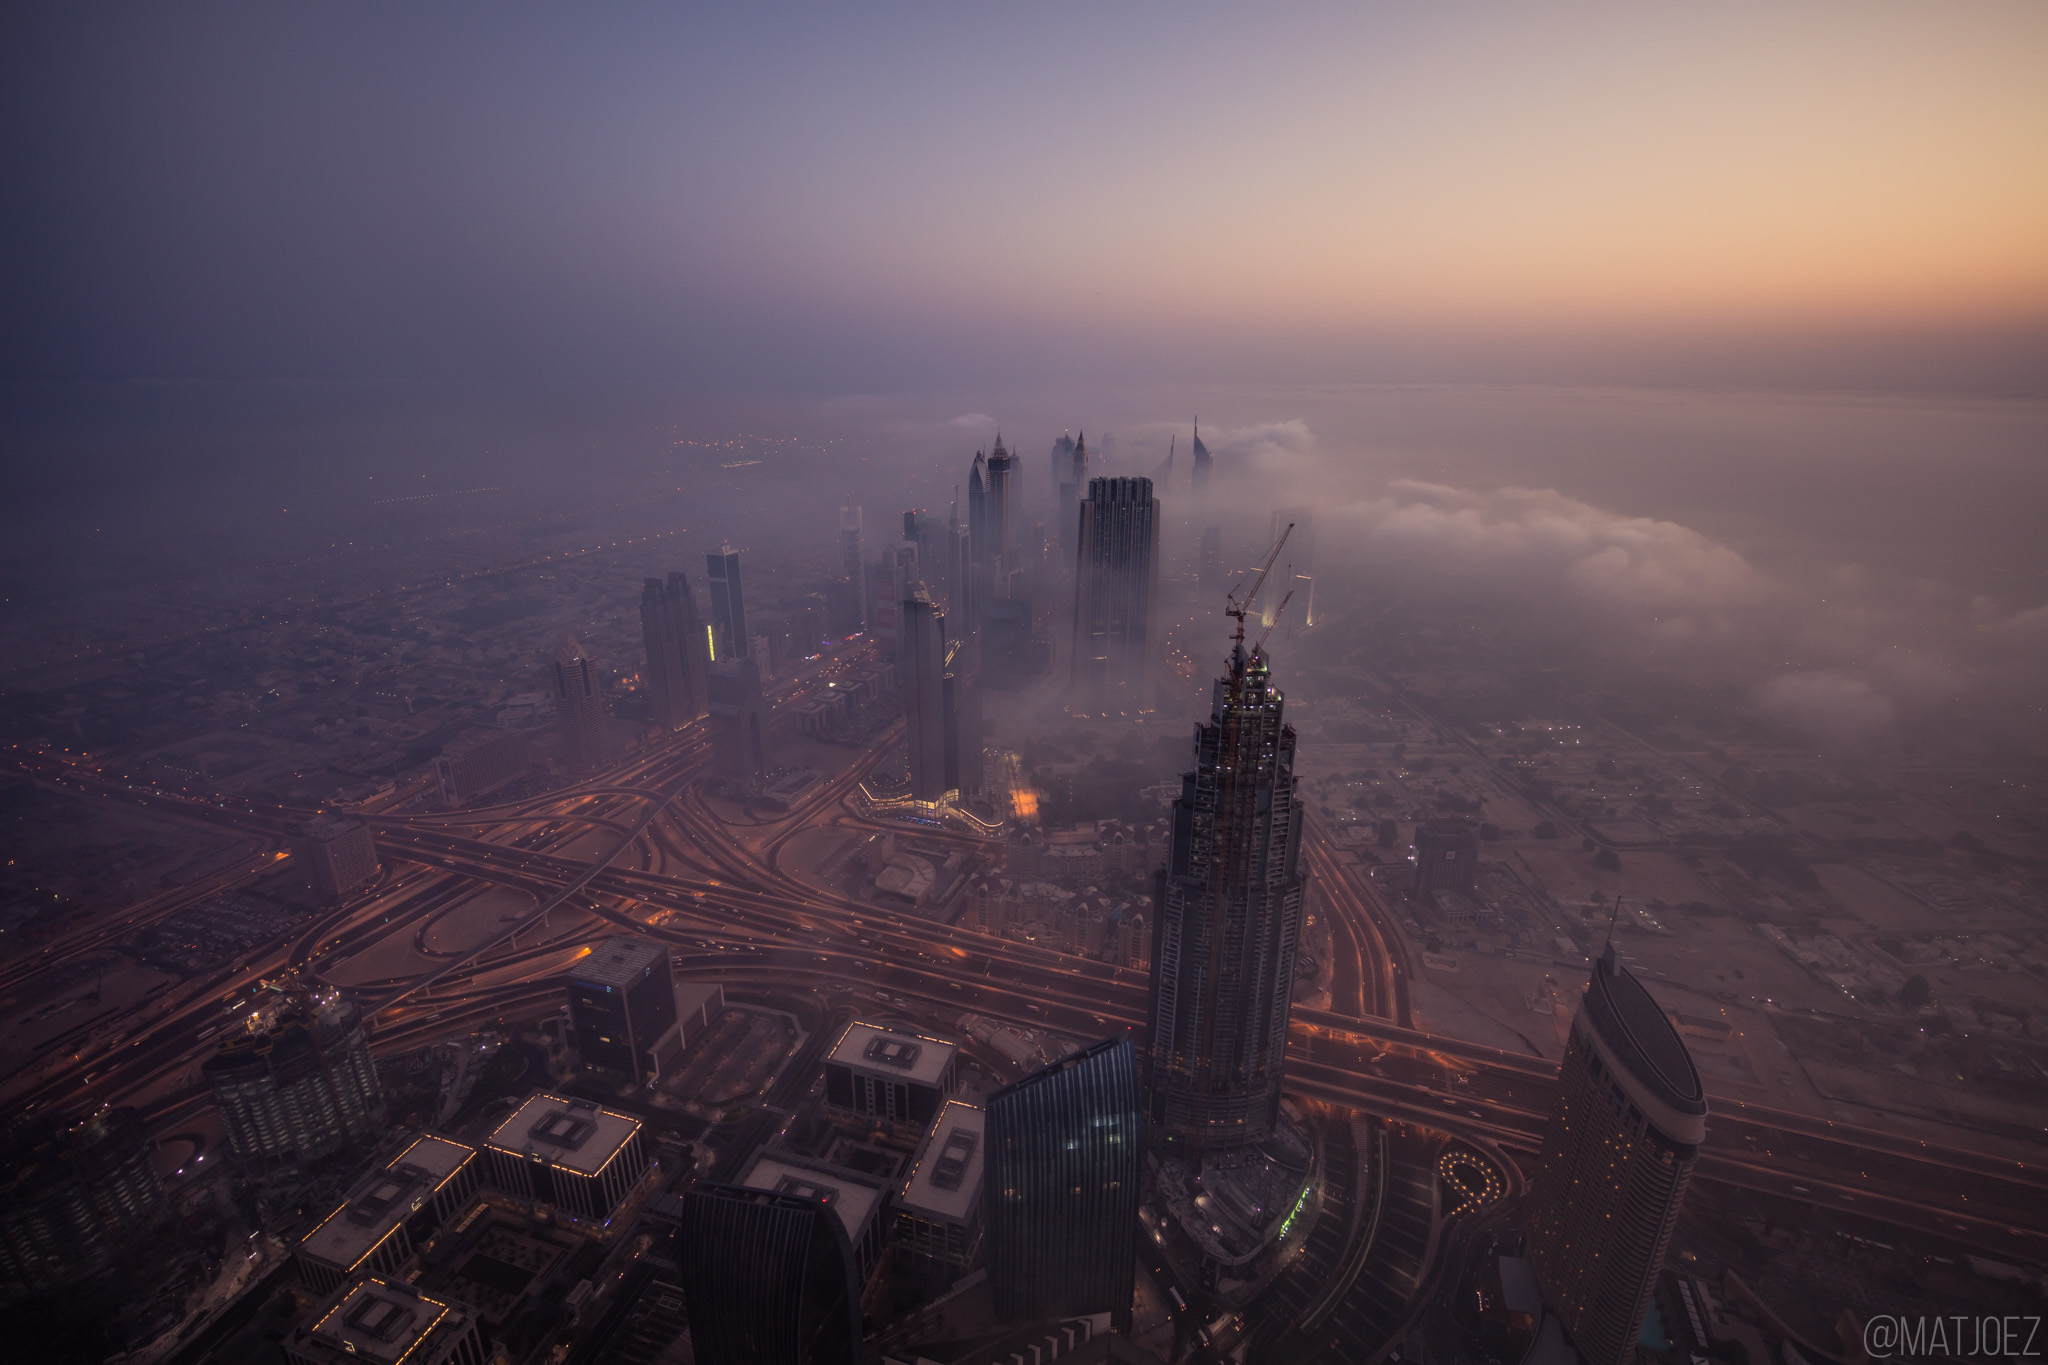 Dramatic 8k Time-Lapse Merges Dubai's City And Desert